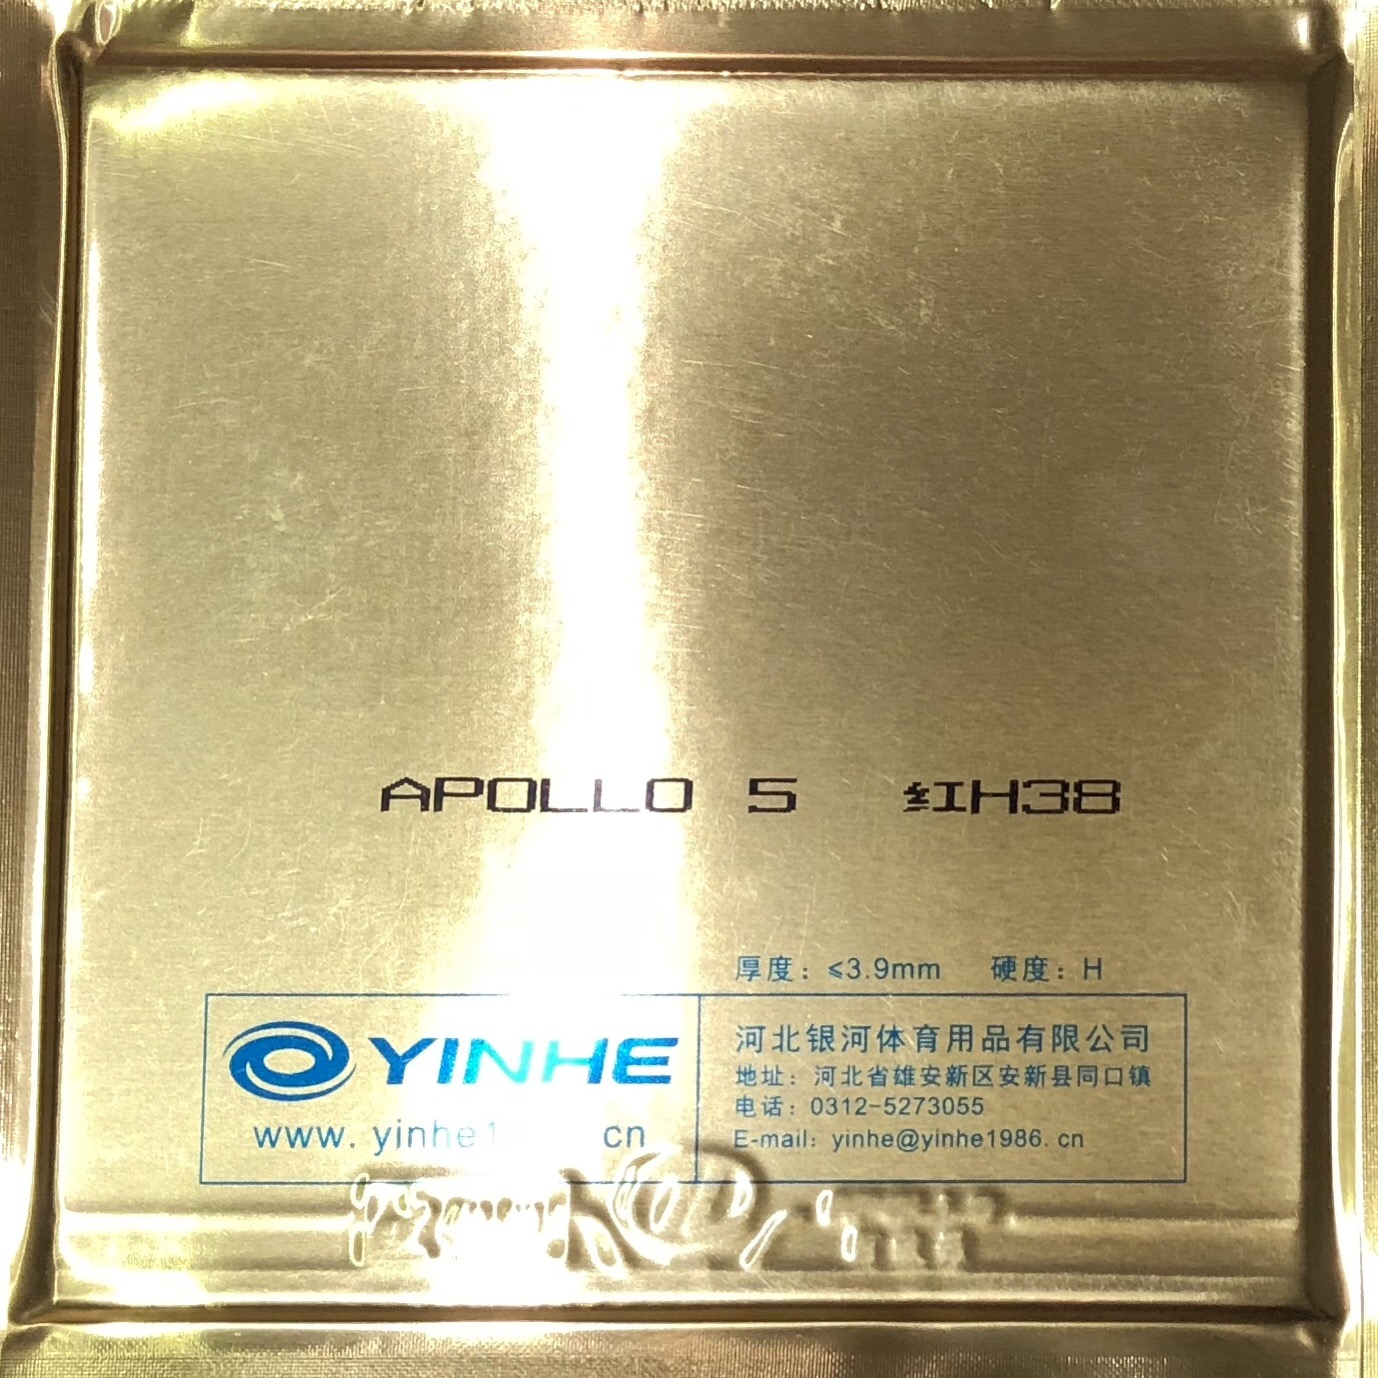 Yinhe Apollo 5 Rubber